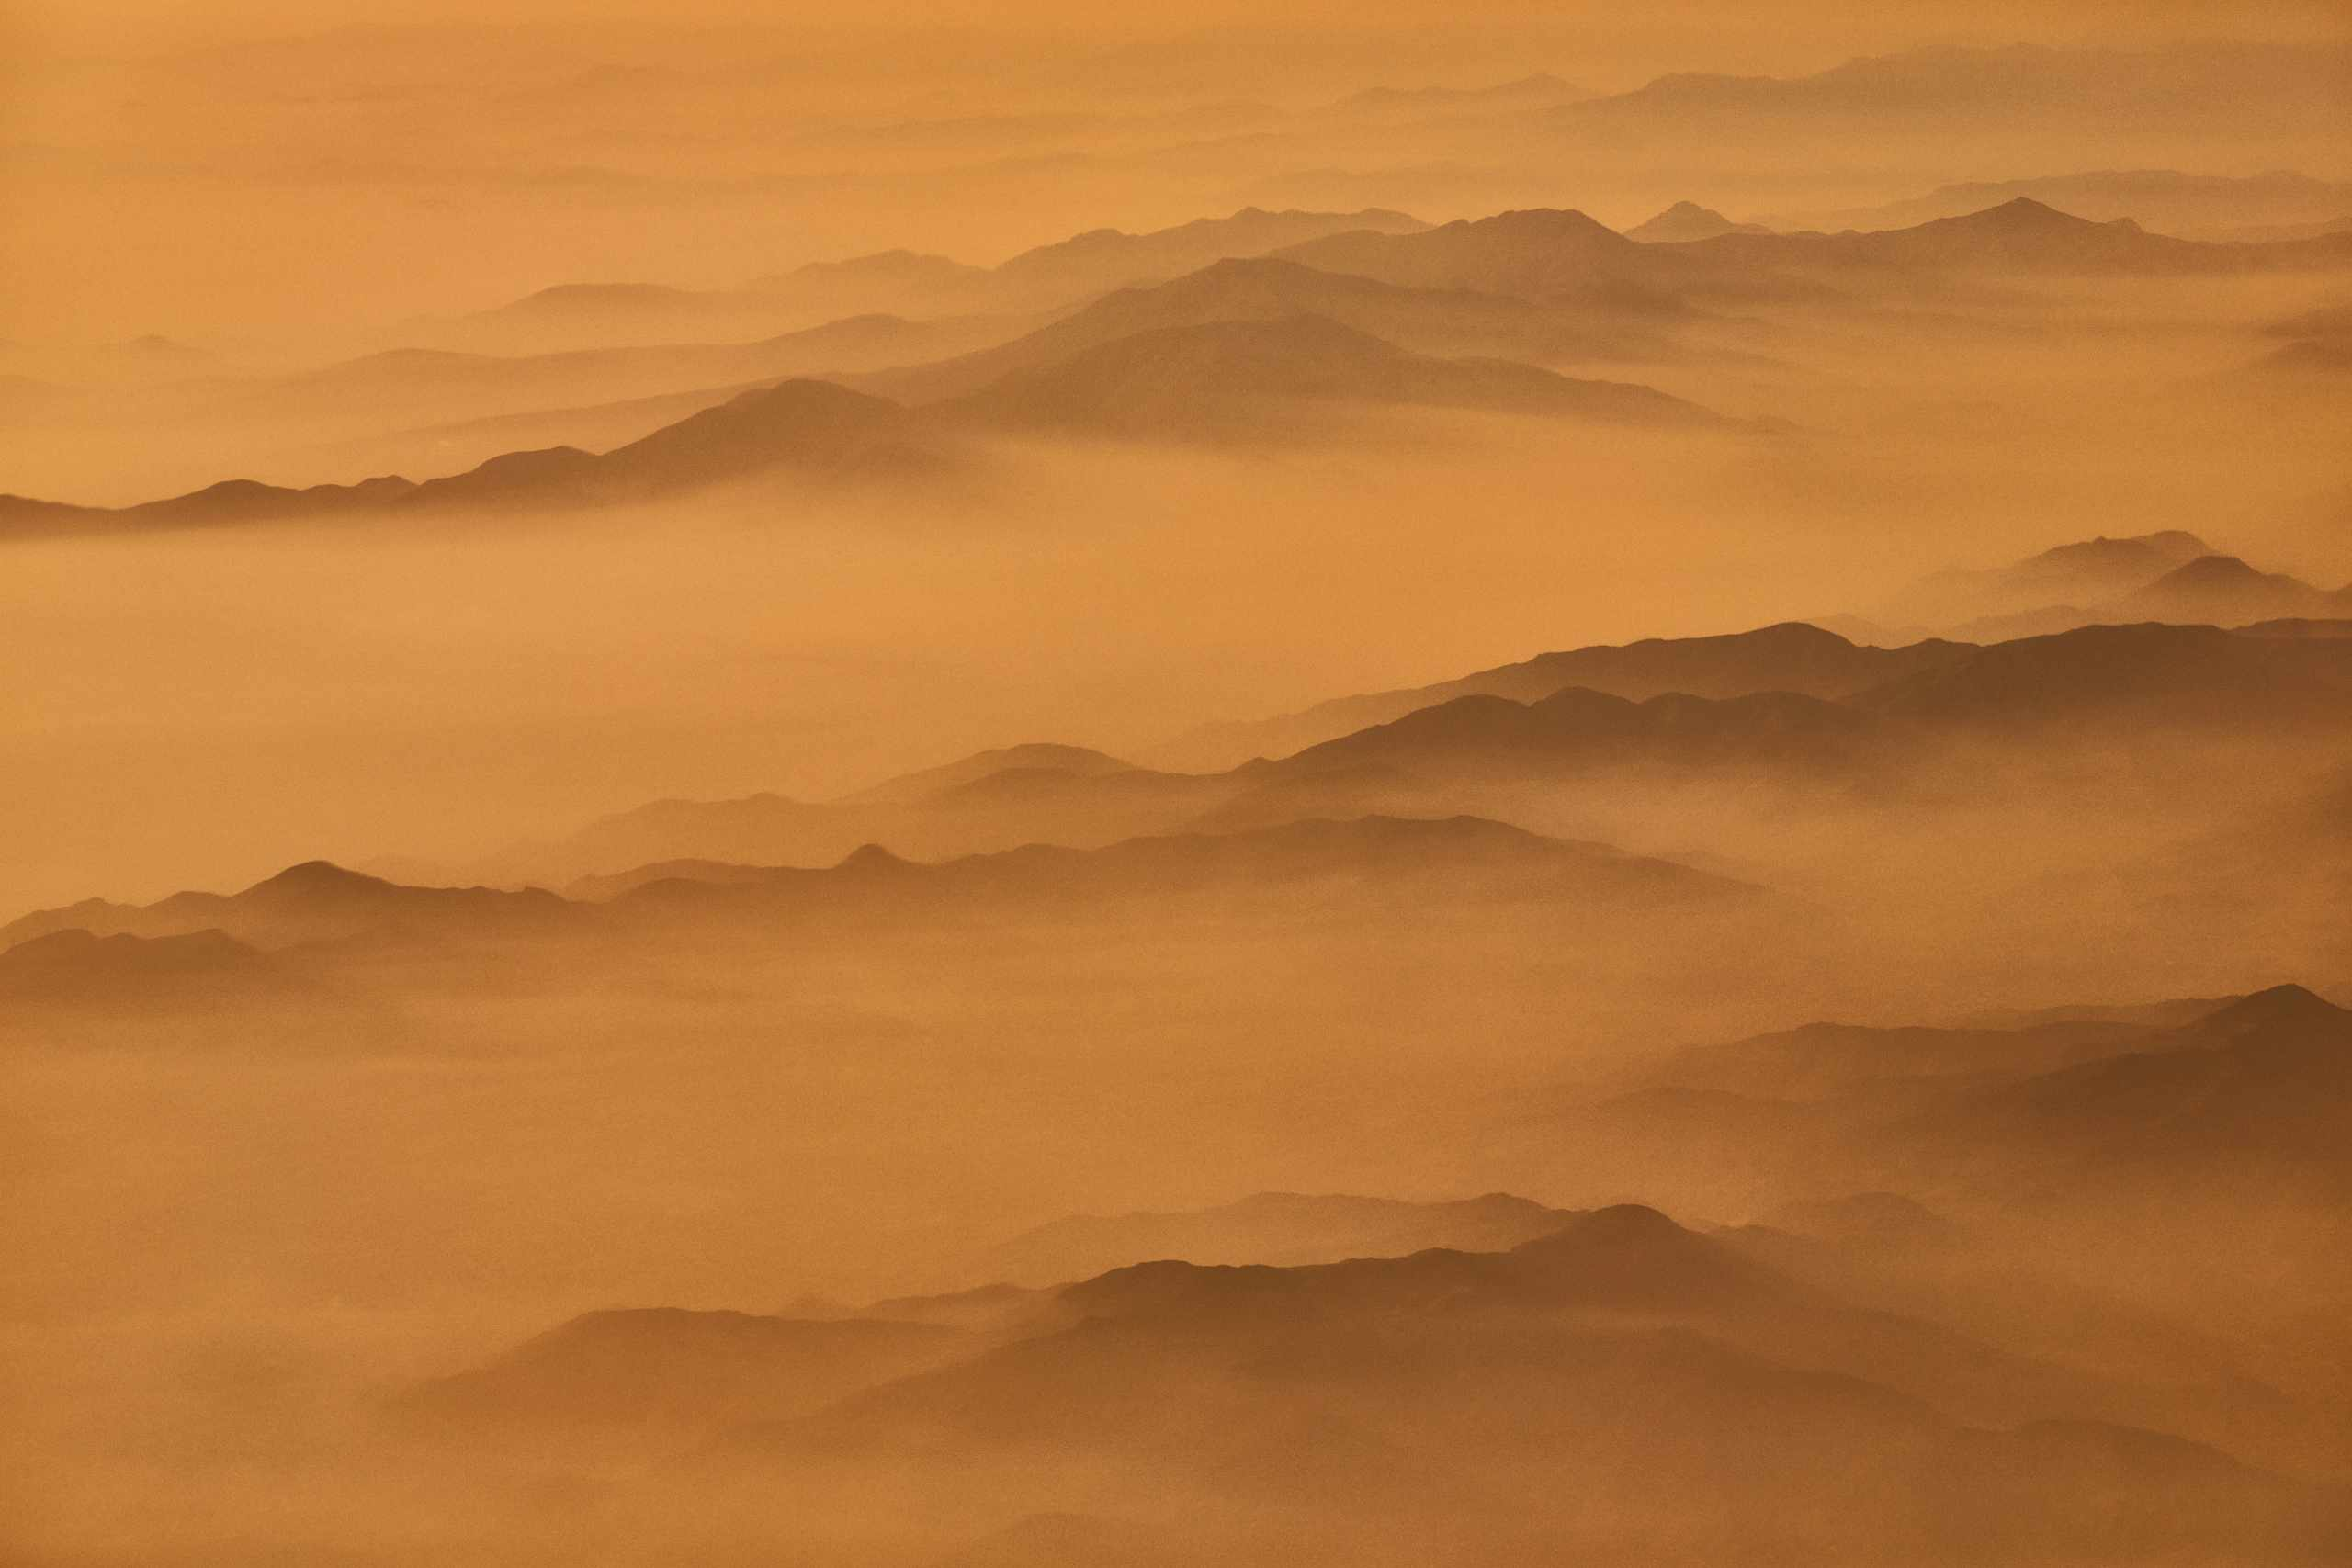 The Andes fading into misty sunset